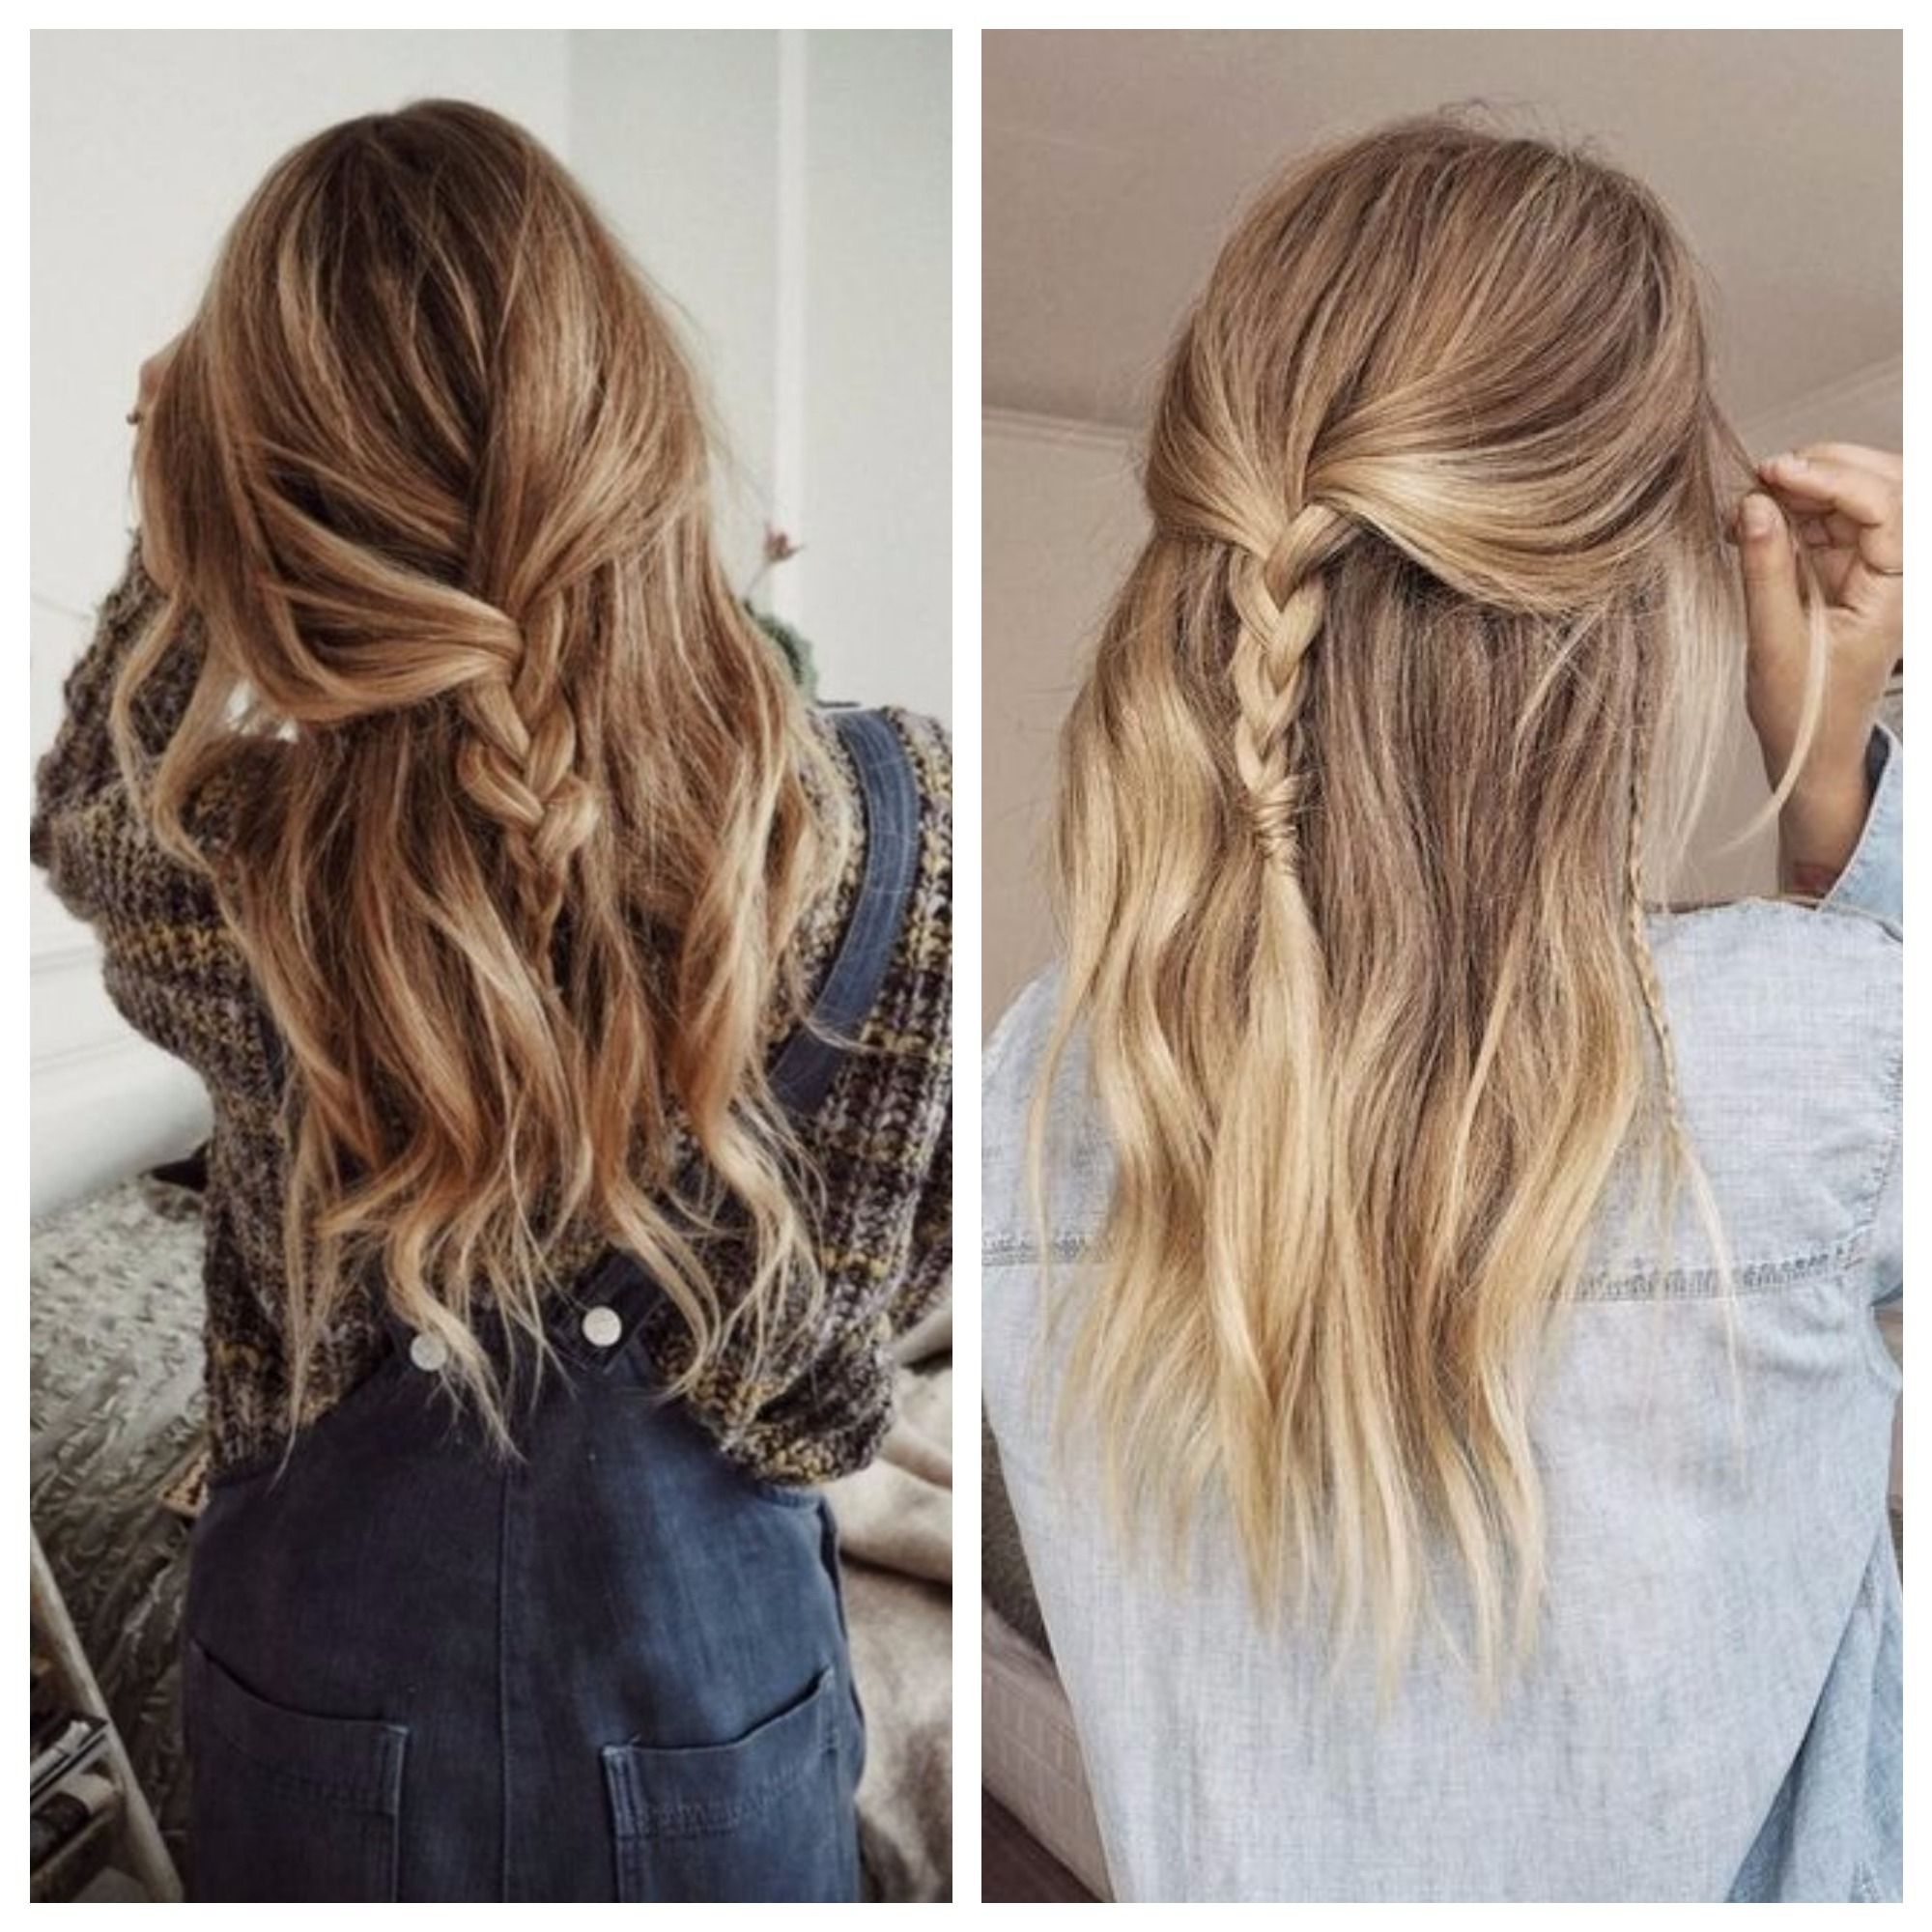 Well Known Braided Loose Hairstyles Throughout Loose Braid Hairstyle Ideas – Hair World Magazine (View 7 of 15)